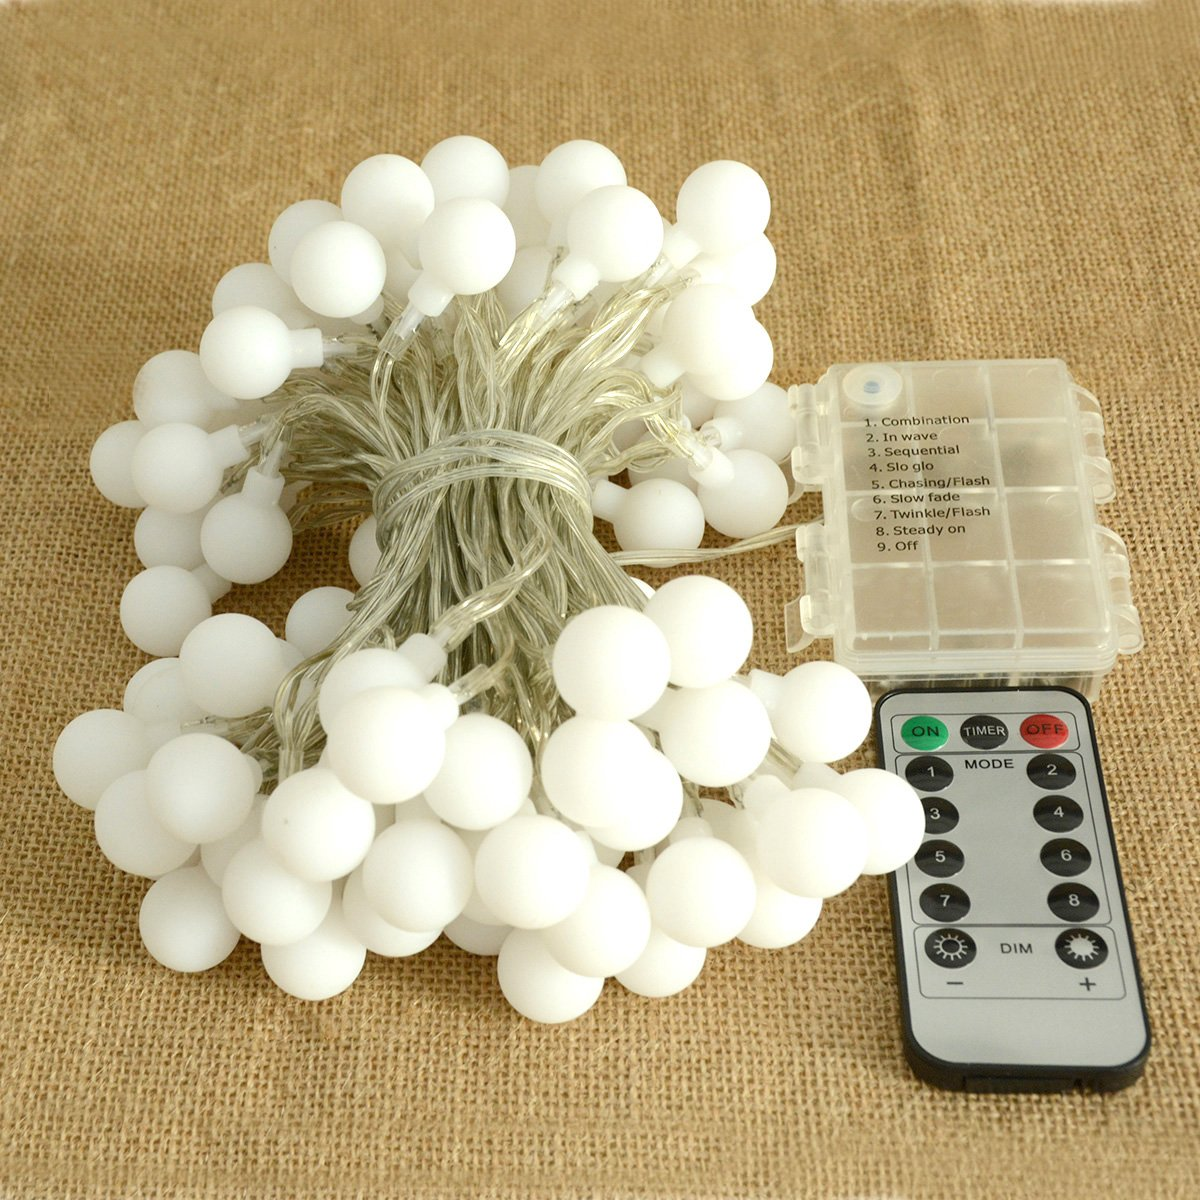 100 LED Warm White Globe String Lights Outdoor Remote /& Timer Waterproof Battery Powered LED Starry Light Fairy Light for Patio Umbrella Garden Party Xmas Tree Wedding Decoration Abkshine